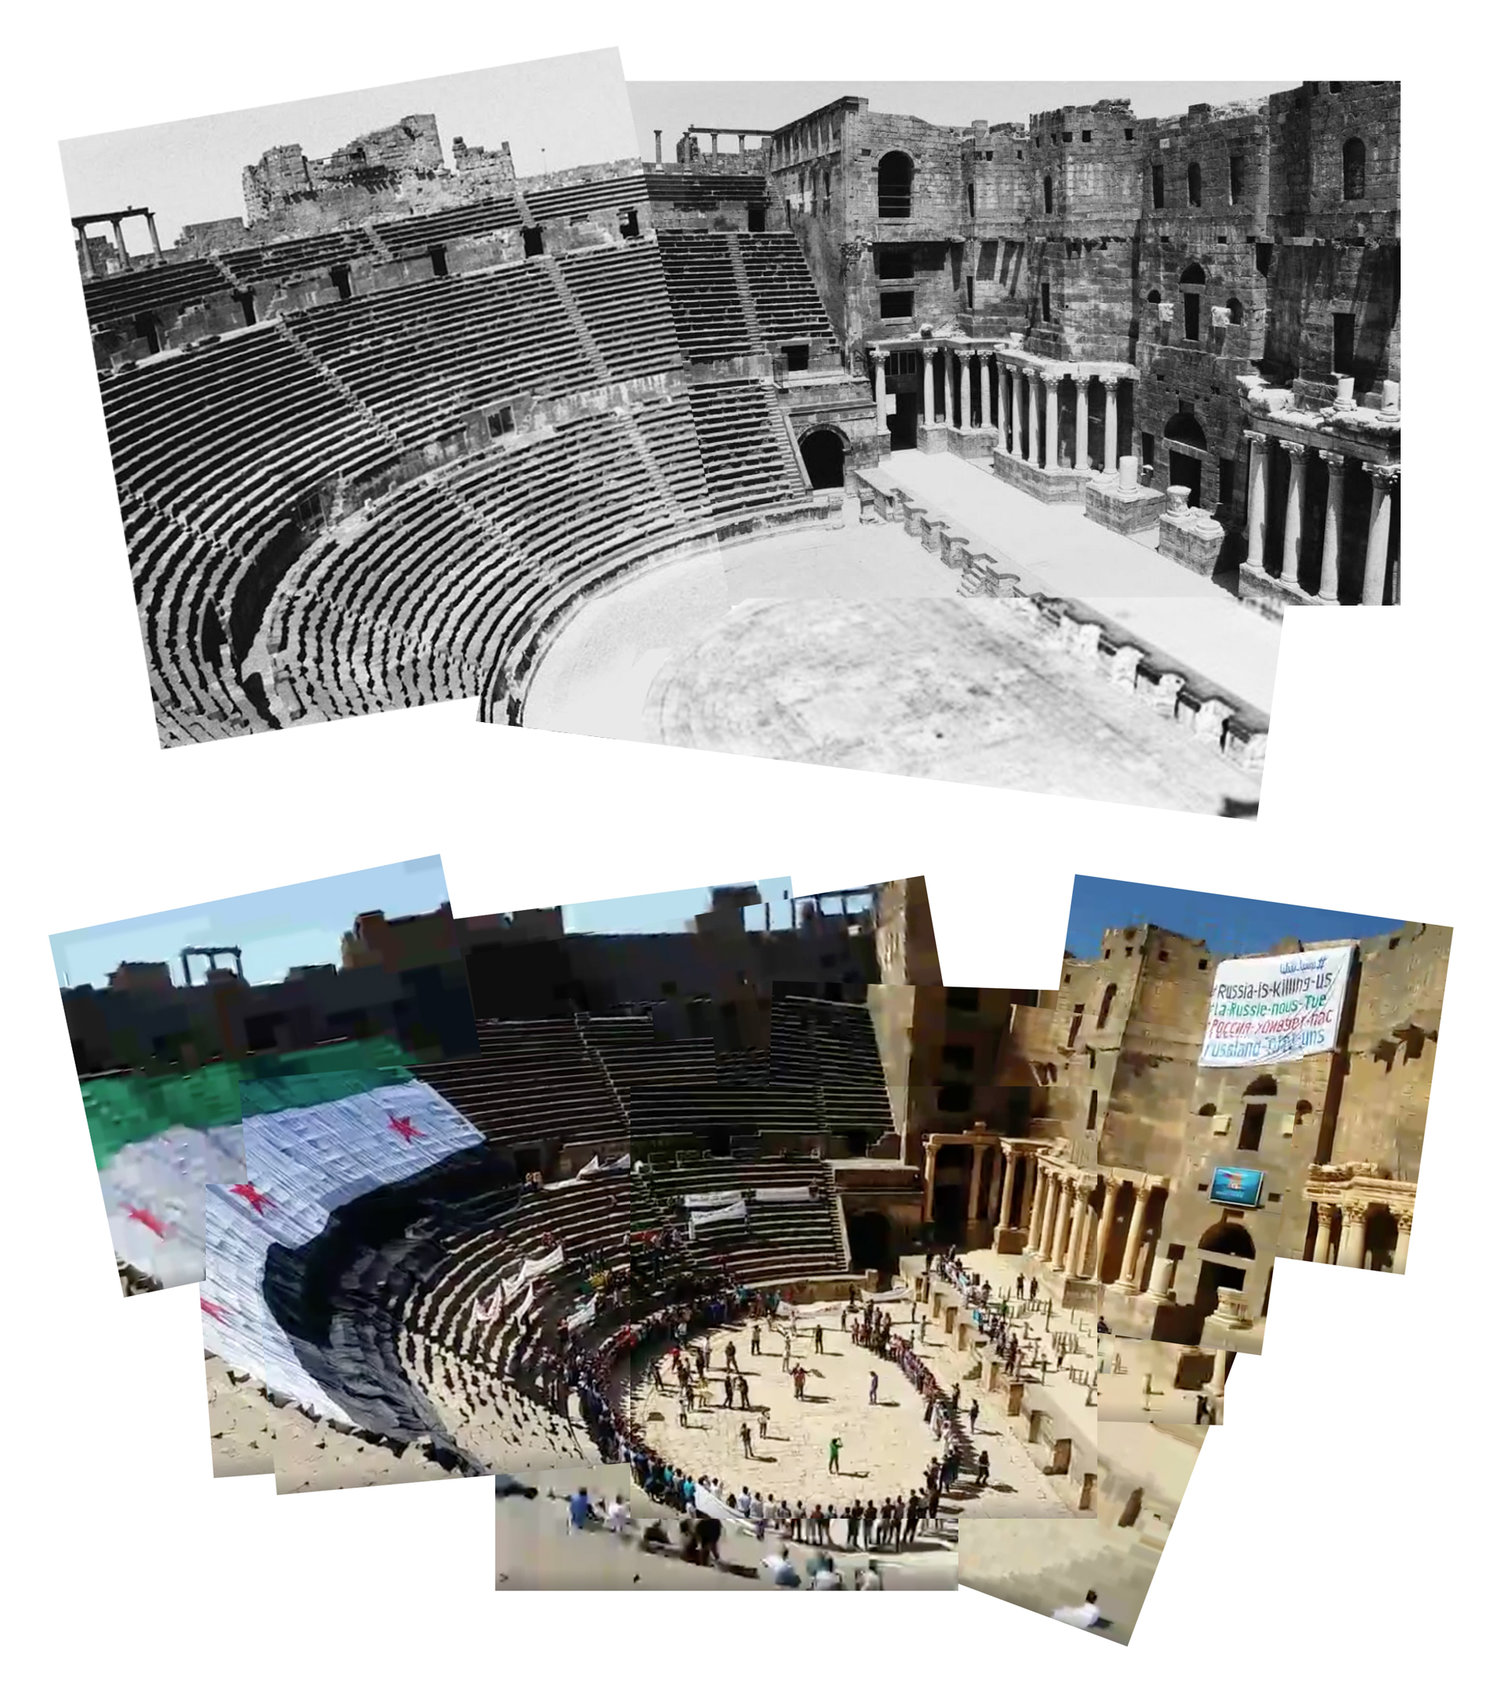 "Top image: Typical representation of Bosra al-Sham Roman amphitheater as a static, objectified and museumified historic space. Image source: Flickr Bottom Image: Representation of the historic space transformed by local community organizers. The historic space is reactivated as a site of popular assembly and political mobilization, appropriated for the purpose of a collective cause through the incorporation of political slogans, songs, flags and banners into the space which are ""prohibited"" by the state. Source: Facebook LiveStream"